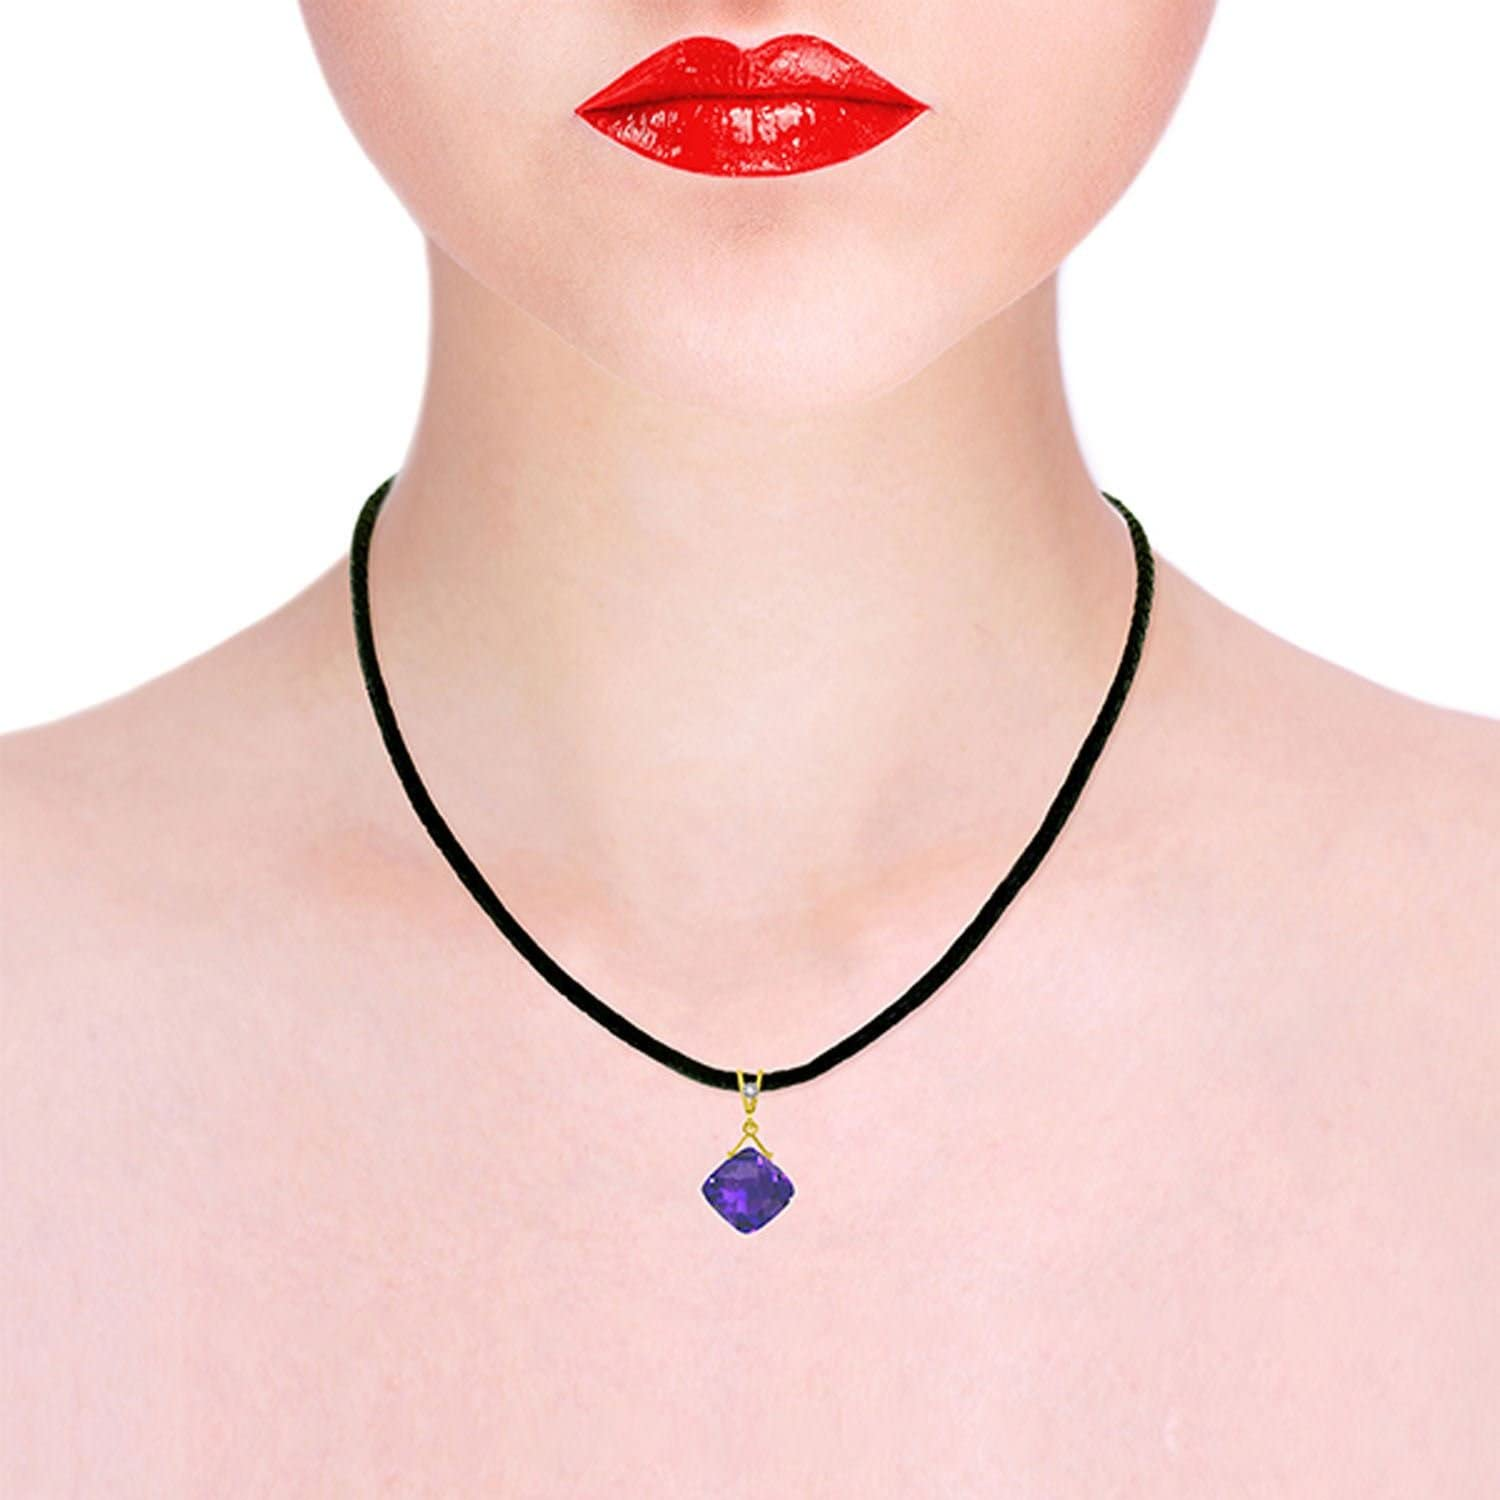 ALARRI 8.76 Carat 14K Solid Gold Leather Necklace Diamond Purple Amethyst with 22 Inch Chain Length